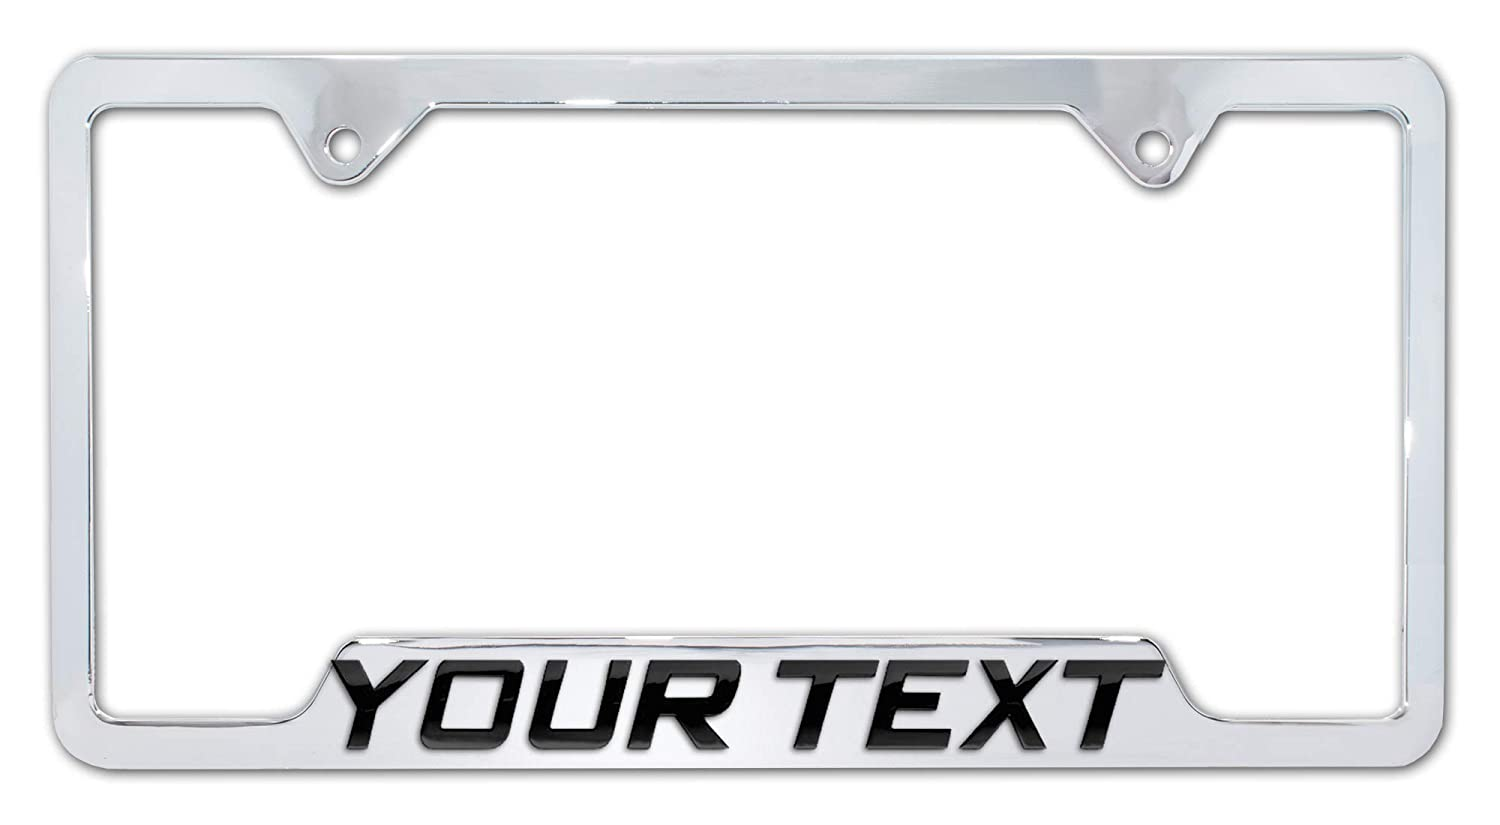 Elektroplate Personalized Metal License Plate Frame with 3D Text - Full Version